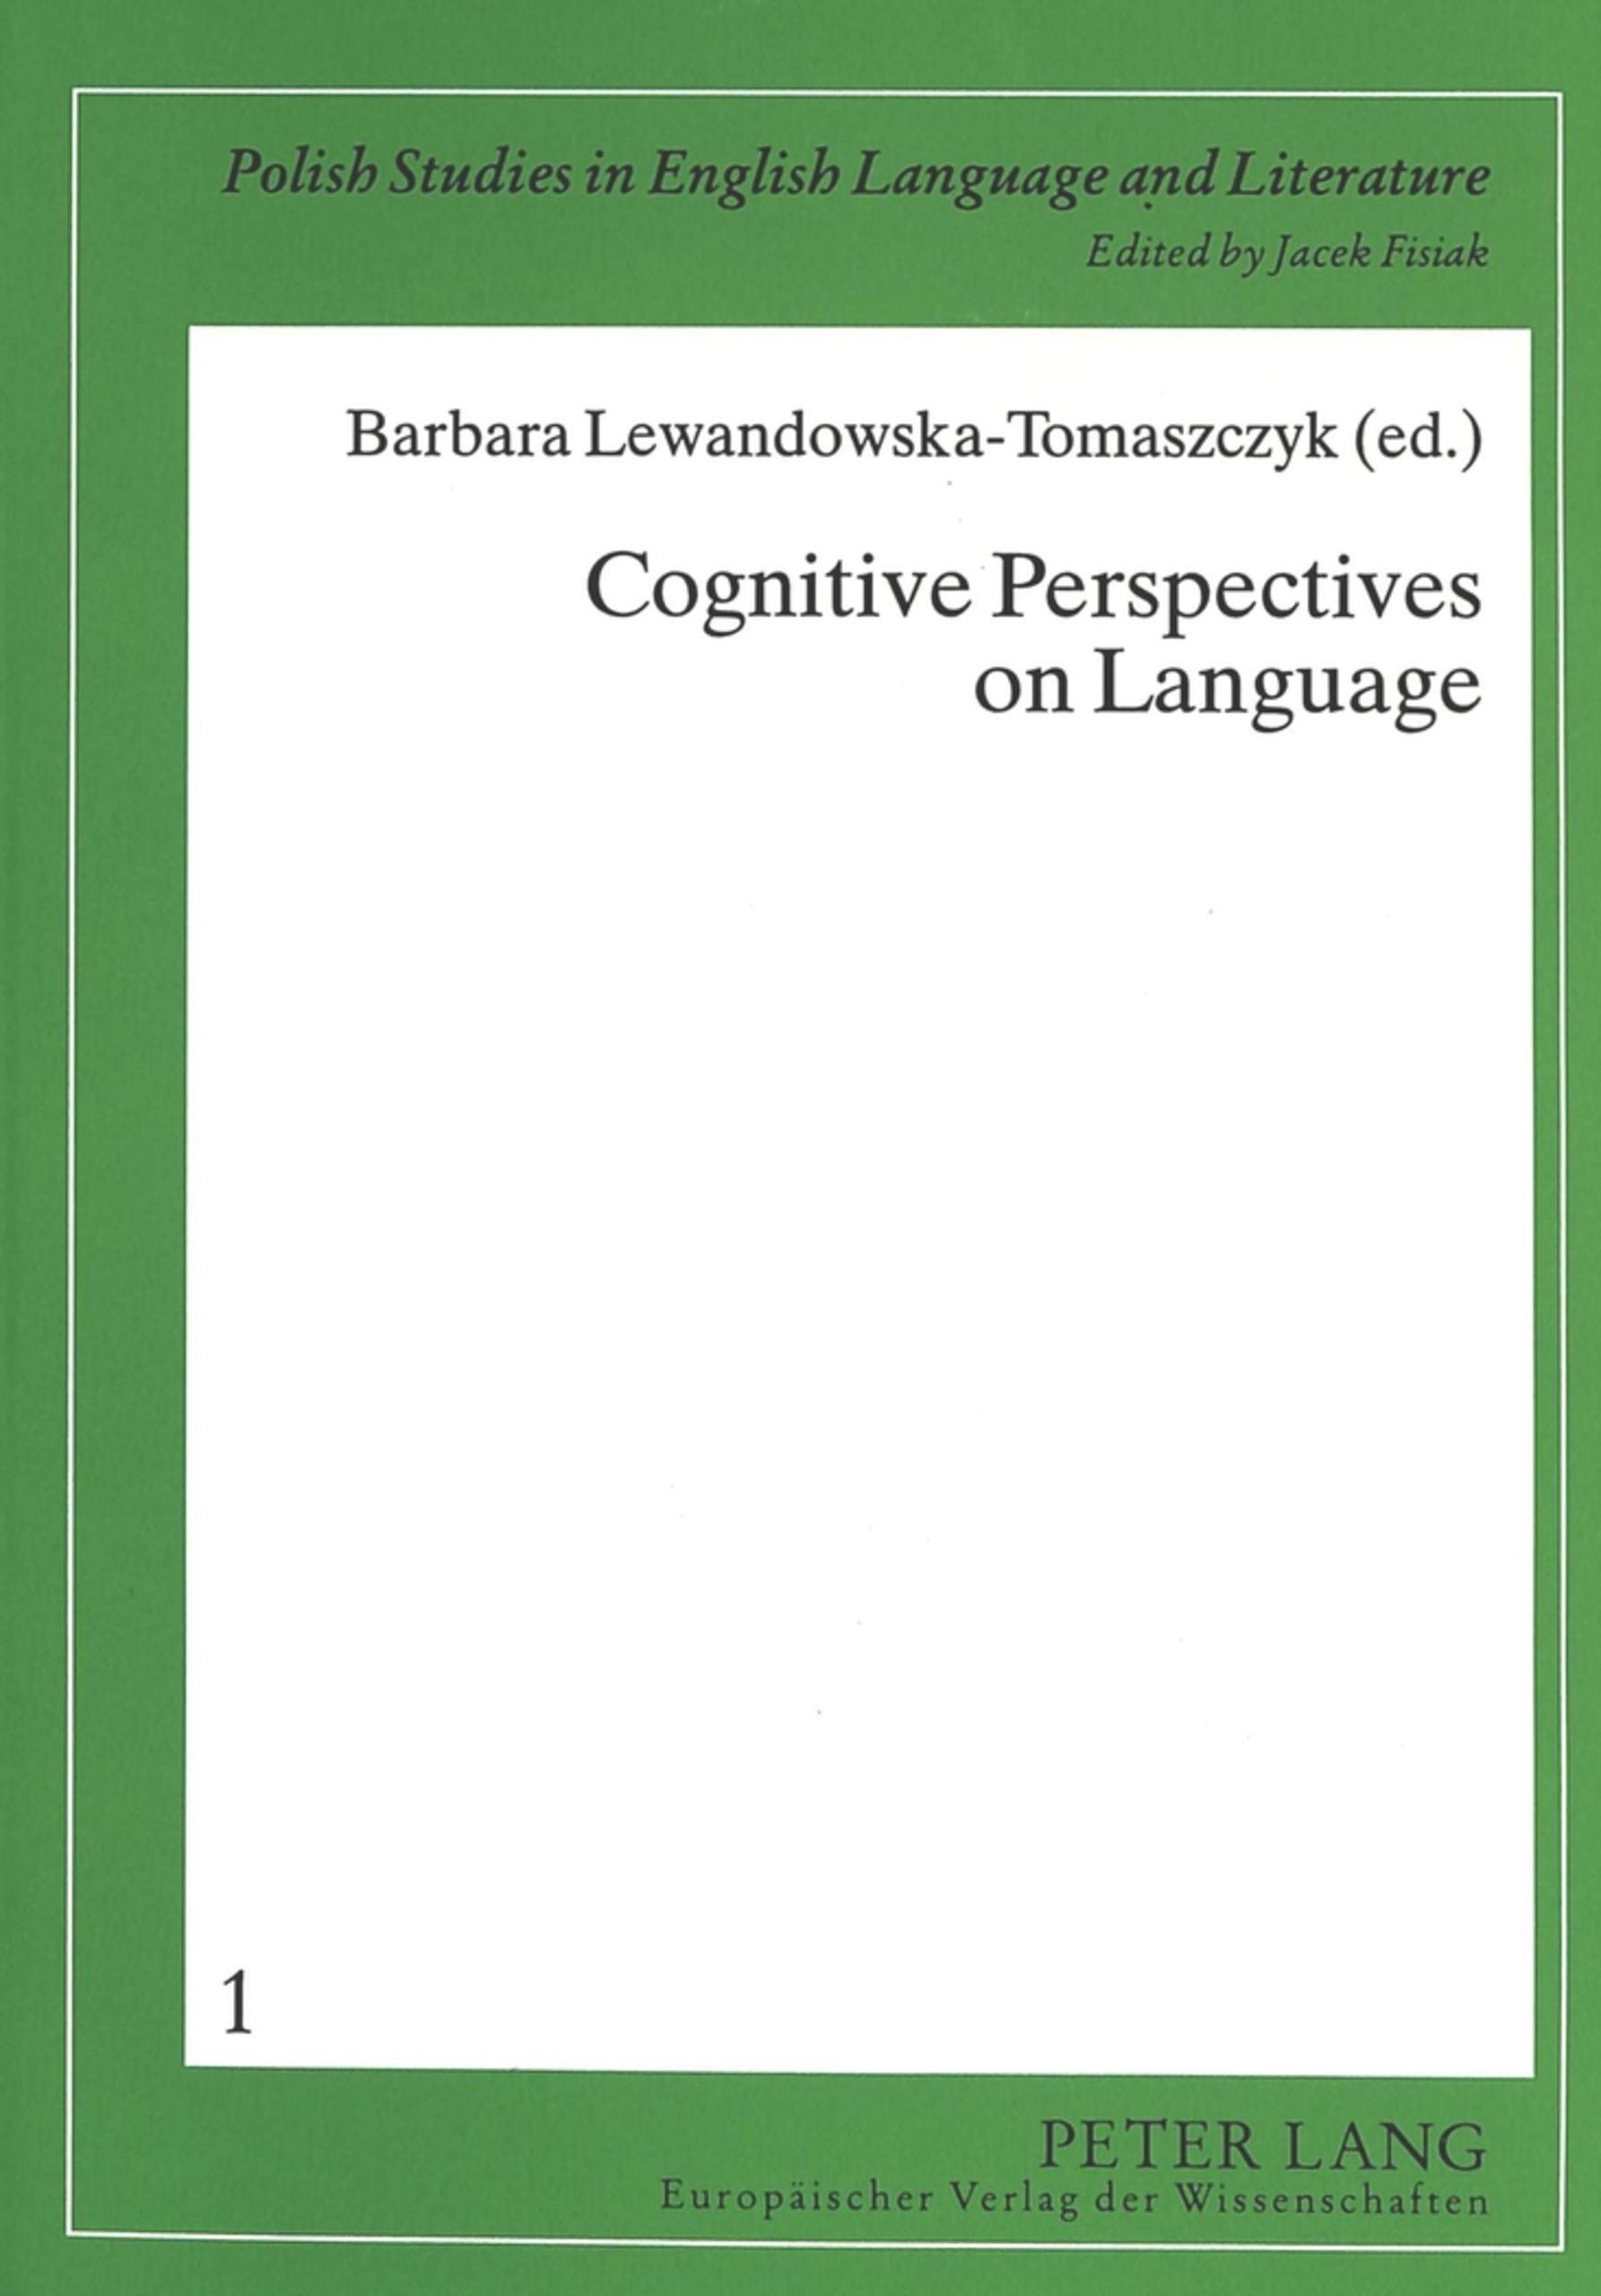 Title: Cognitive Perspectives on Language